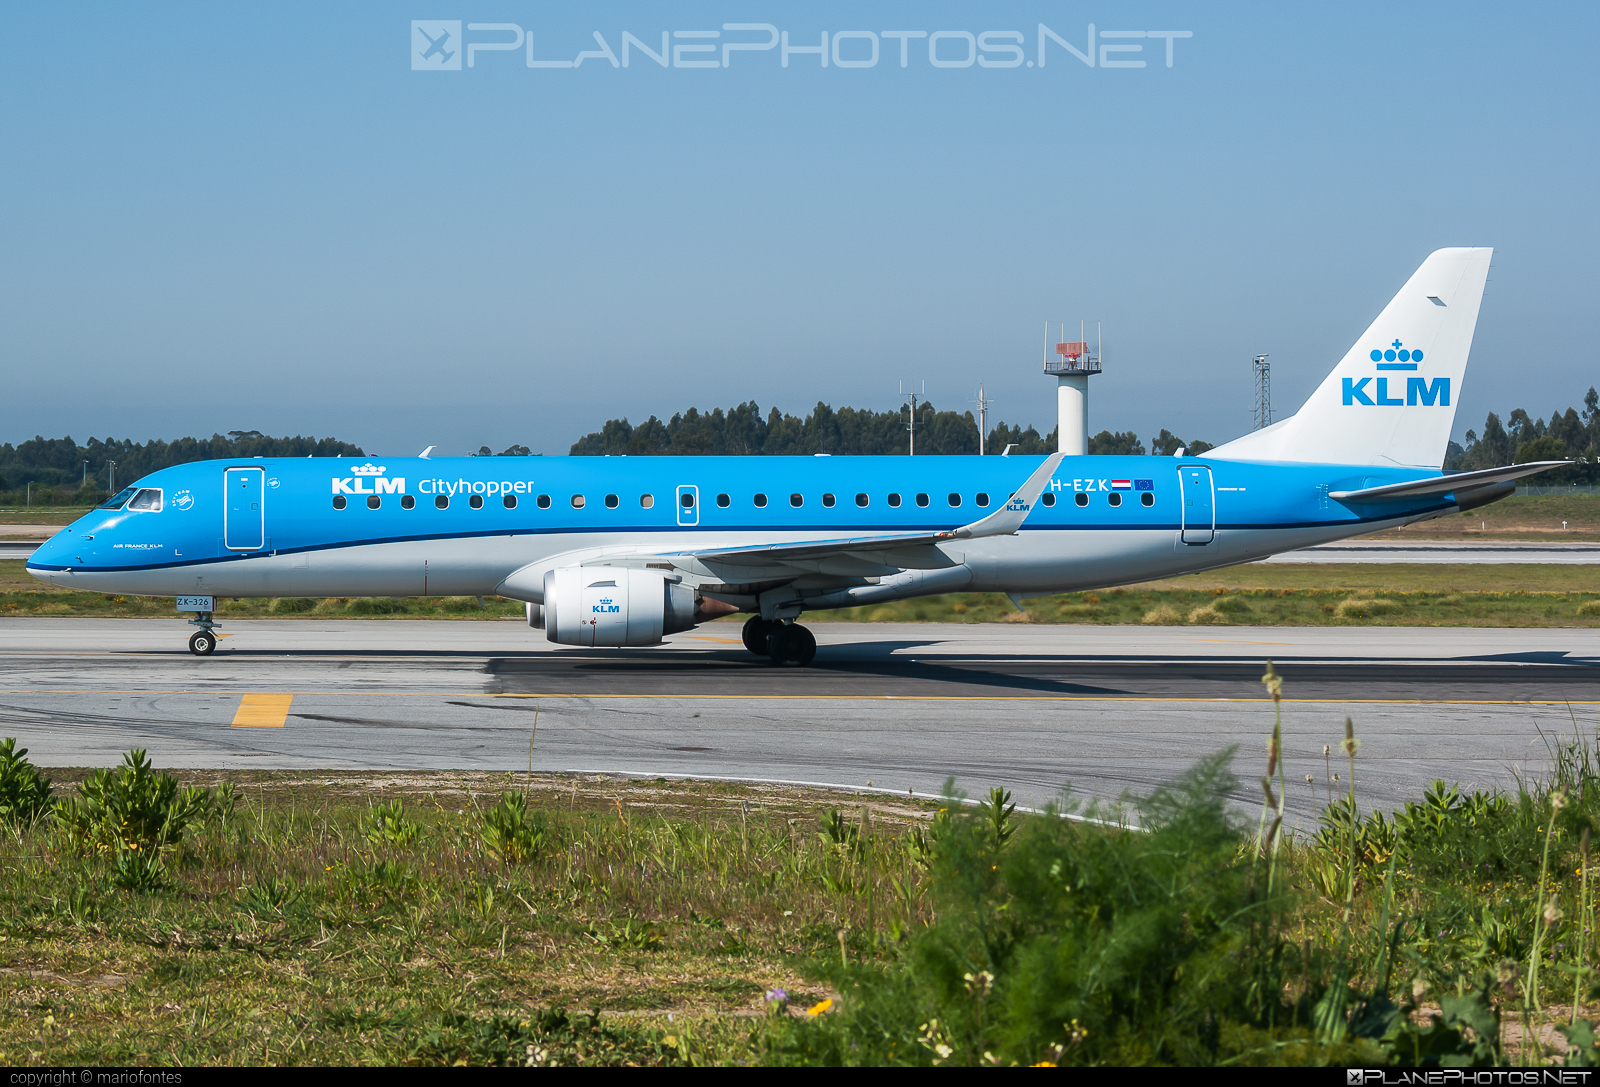 Embraer E190STD (ERJ-190-100STD) - PH-EZK operated by KLM Cityhopper #e190 #e190100 #e190100std #e190std #embraer #embraer190 #embraer190100std #embraer190std #klm #klmcityhopper